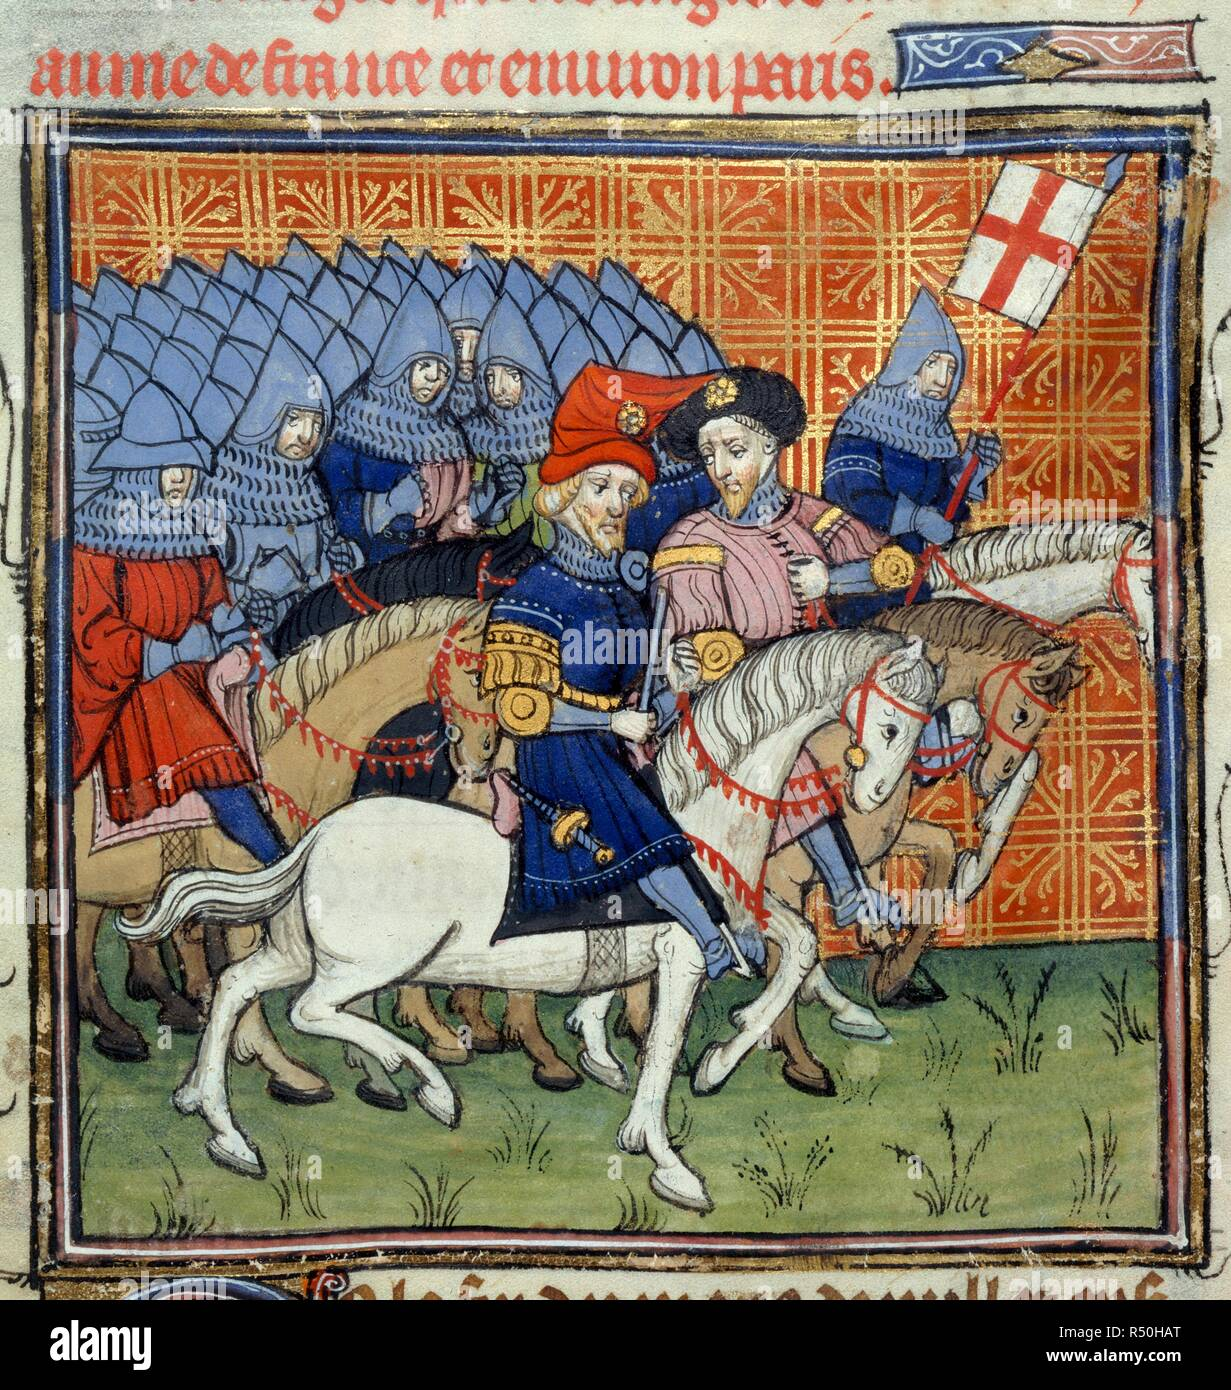 The English army marching under the banner of St. George in the Hundred Years' War. Chroniques de France ou de St. Denis. End of 14th century. Source: Royal 20 C. VII, f.186. Language: French. - Stock Image